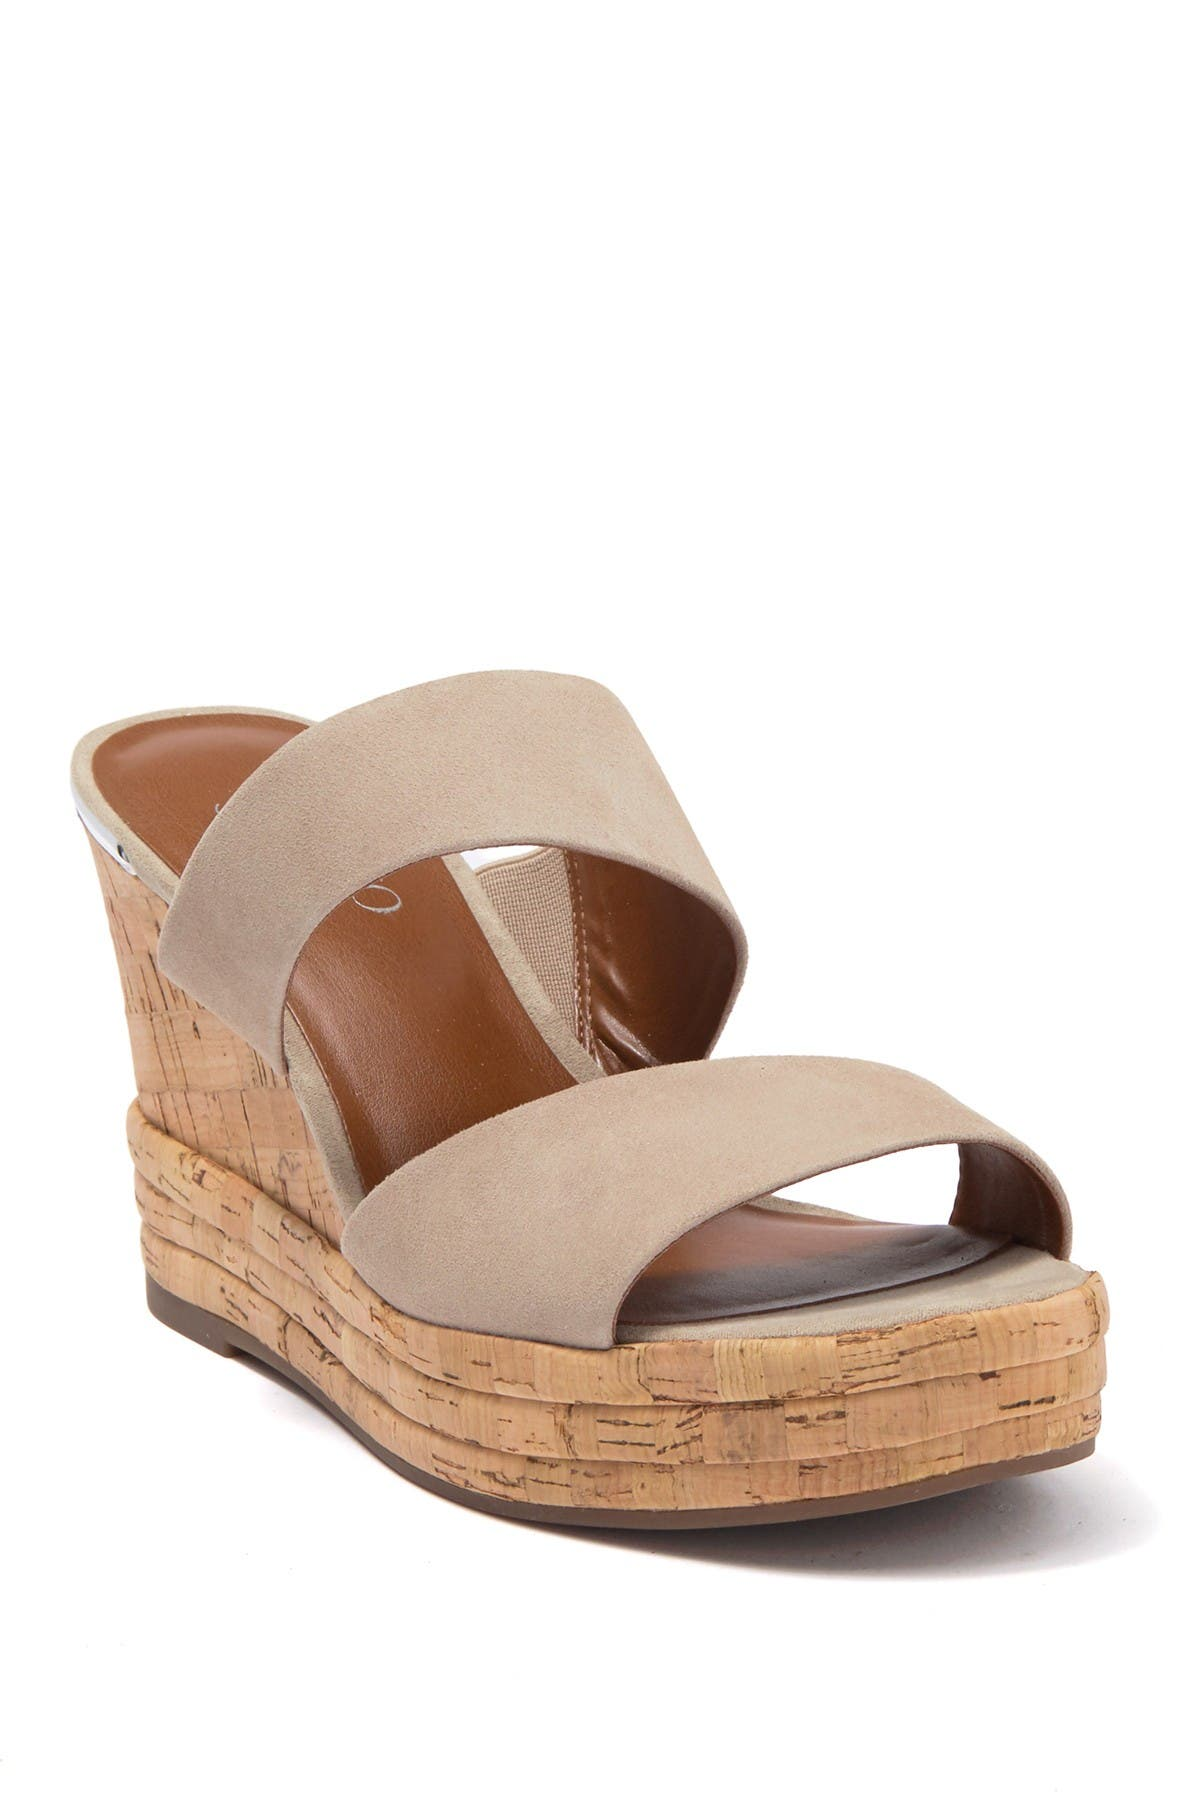 Image of Franco Sarto Fiore Wedge Sandal